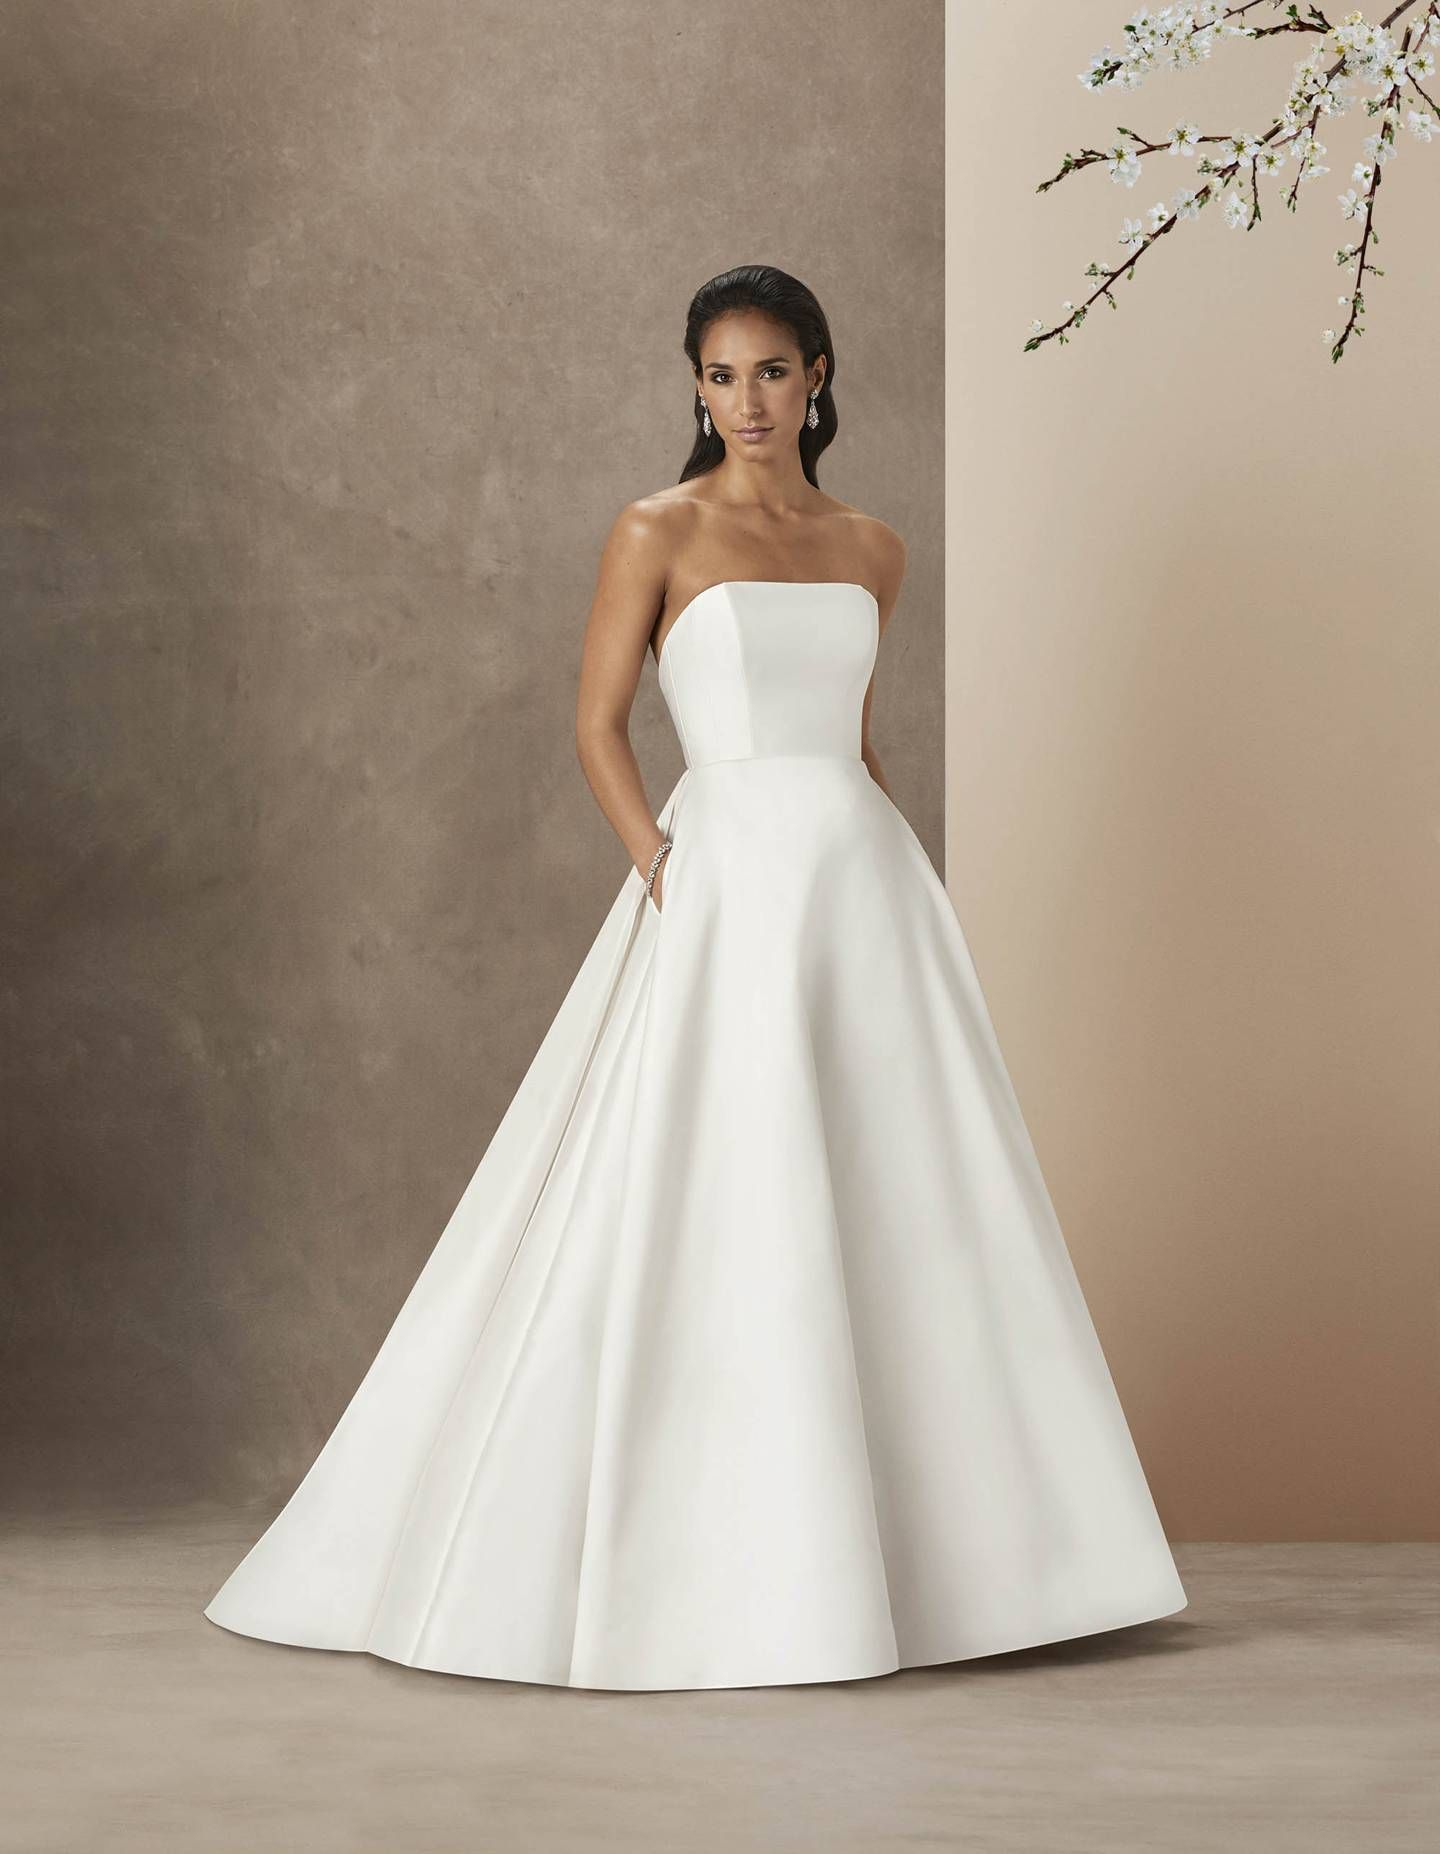 20 Simple And Elegant Wedding Dresses You Can Buy Right Now Plain Wedding Dress Minimalist Wedding Dresses Wedding Dresses Simple [ 1854 x 1440 Pixel ]